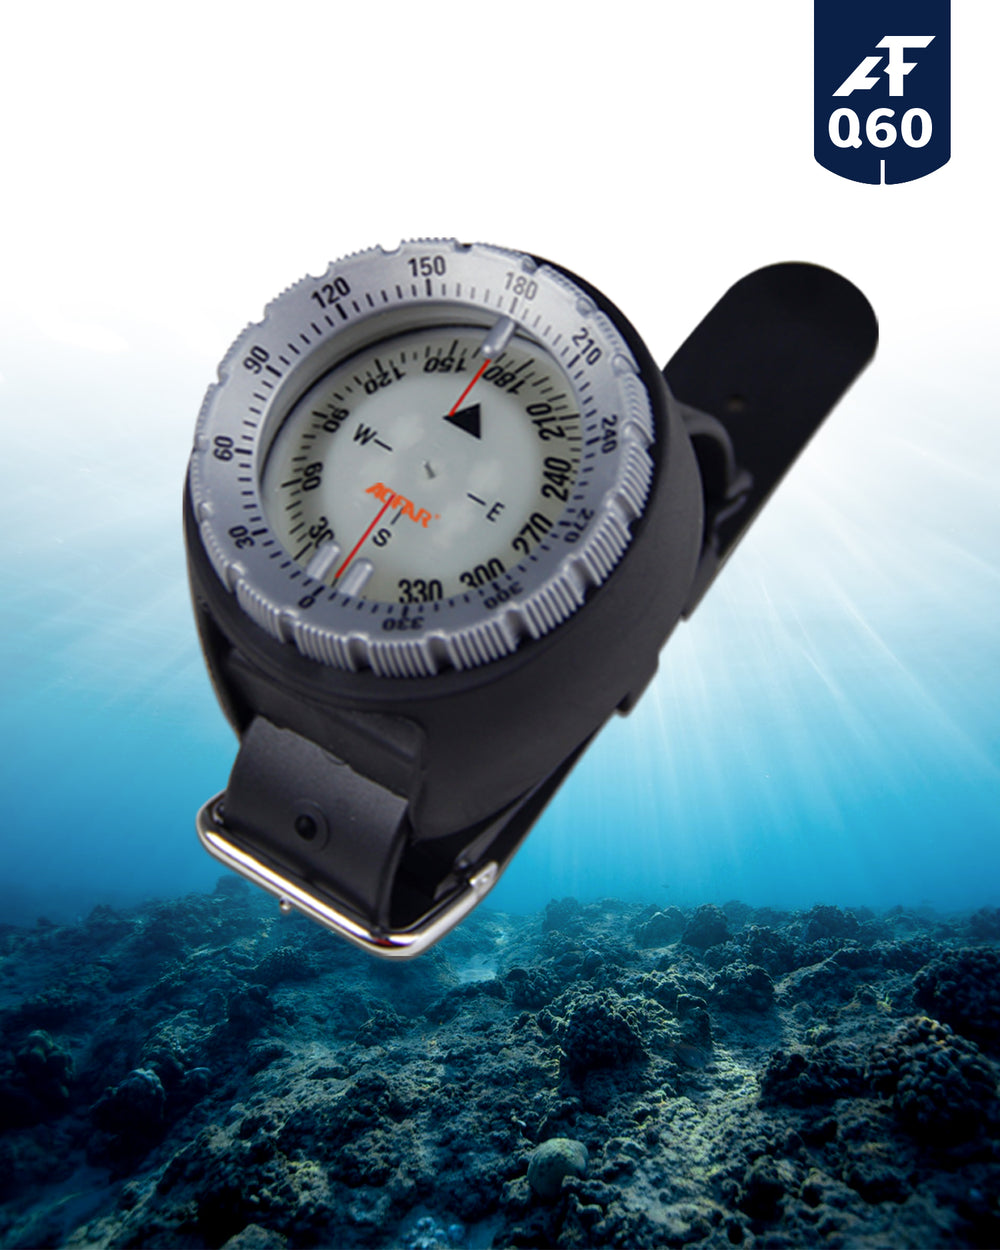 AOFAR Dive Wrist Compass AF-Q60 waterproof for Sailing, Diving